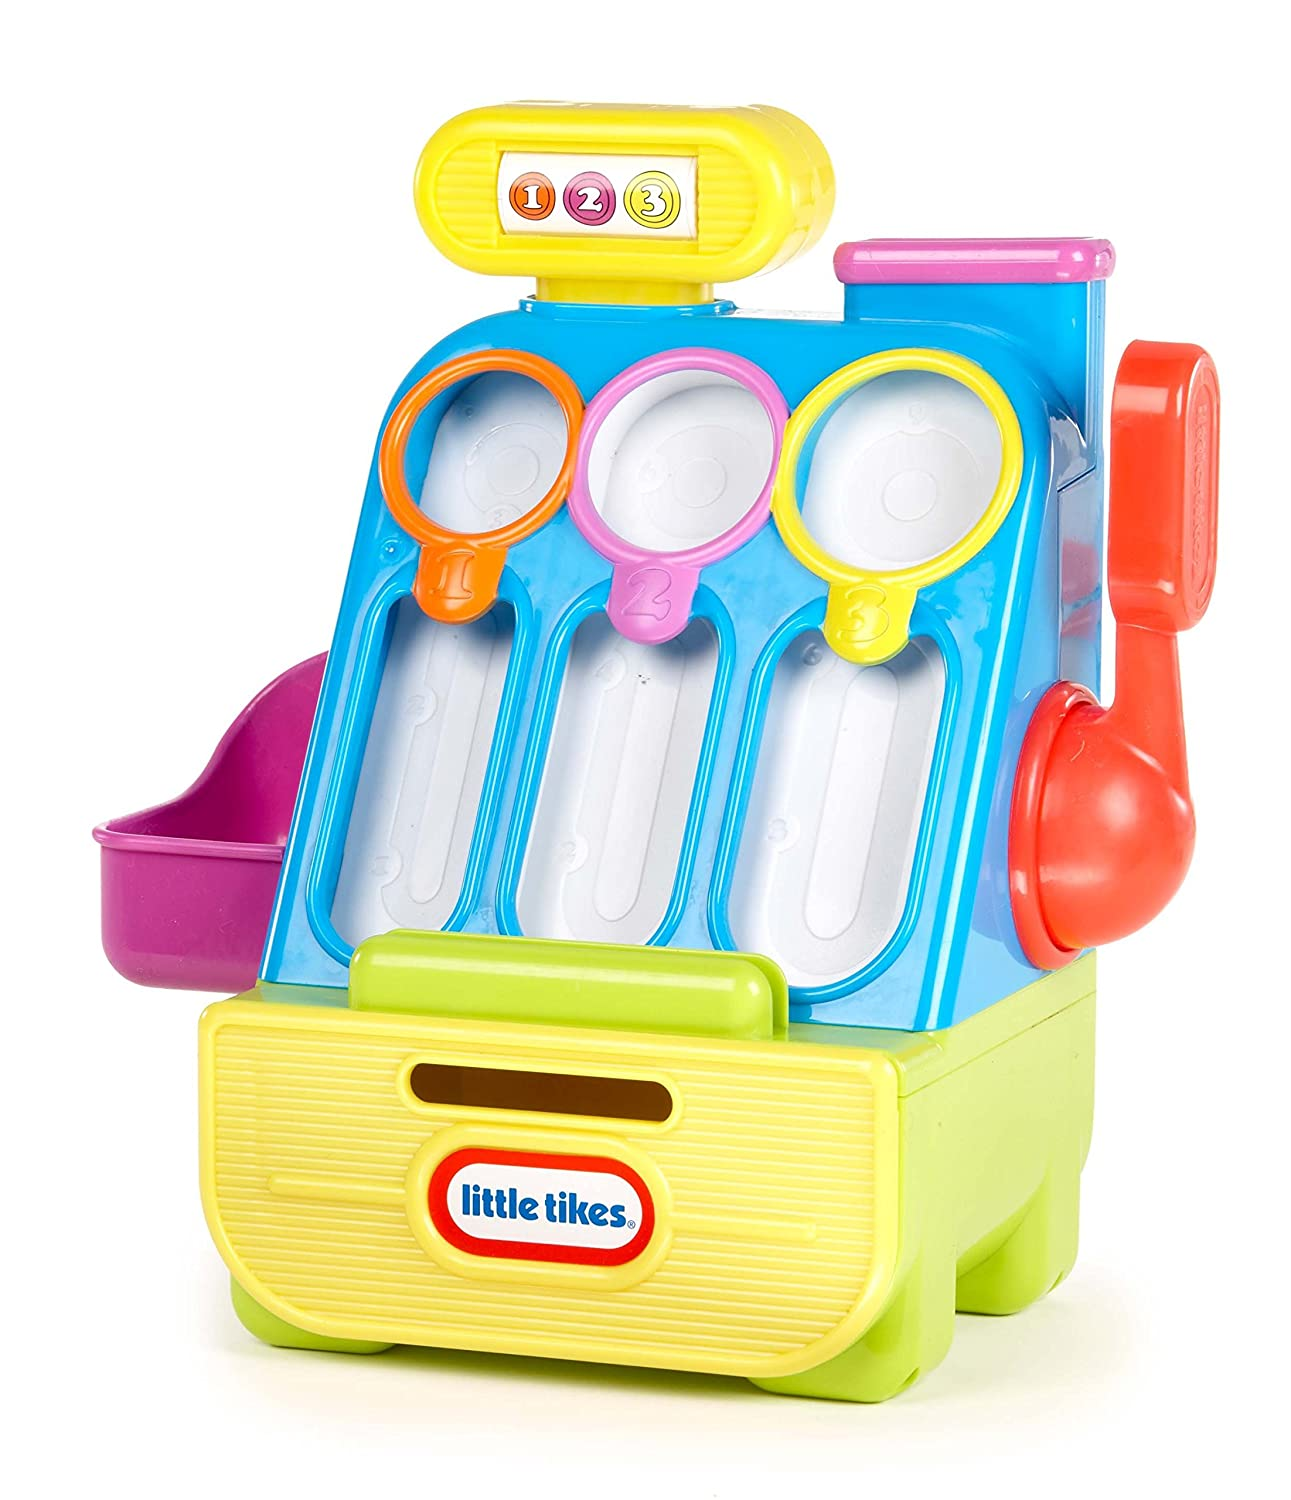 Little tikes cash register - Amazon Com Little Tikes Count N Play Cash Register Playset Toys Games